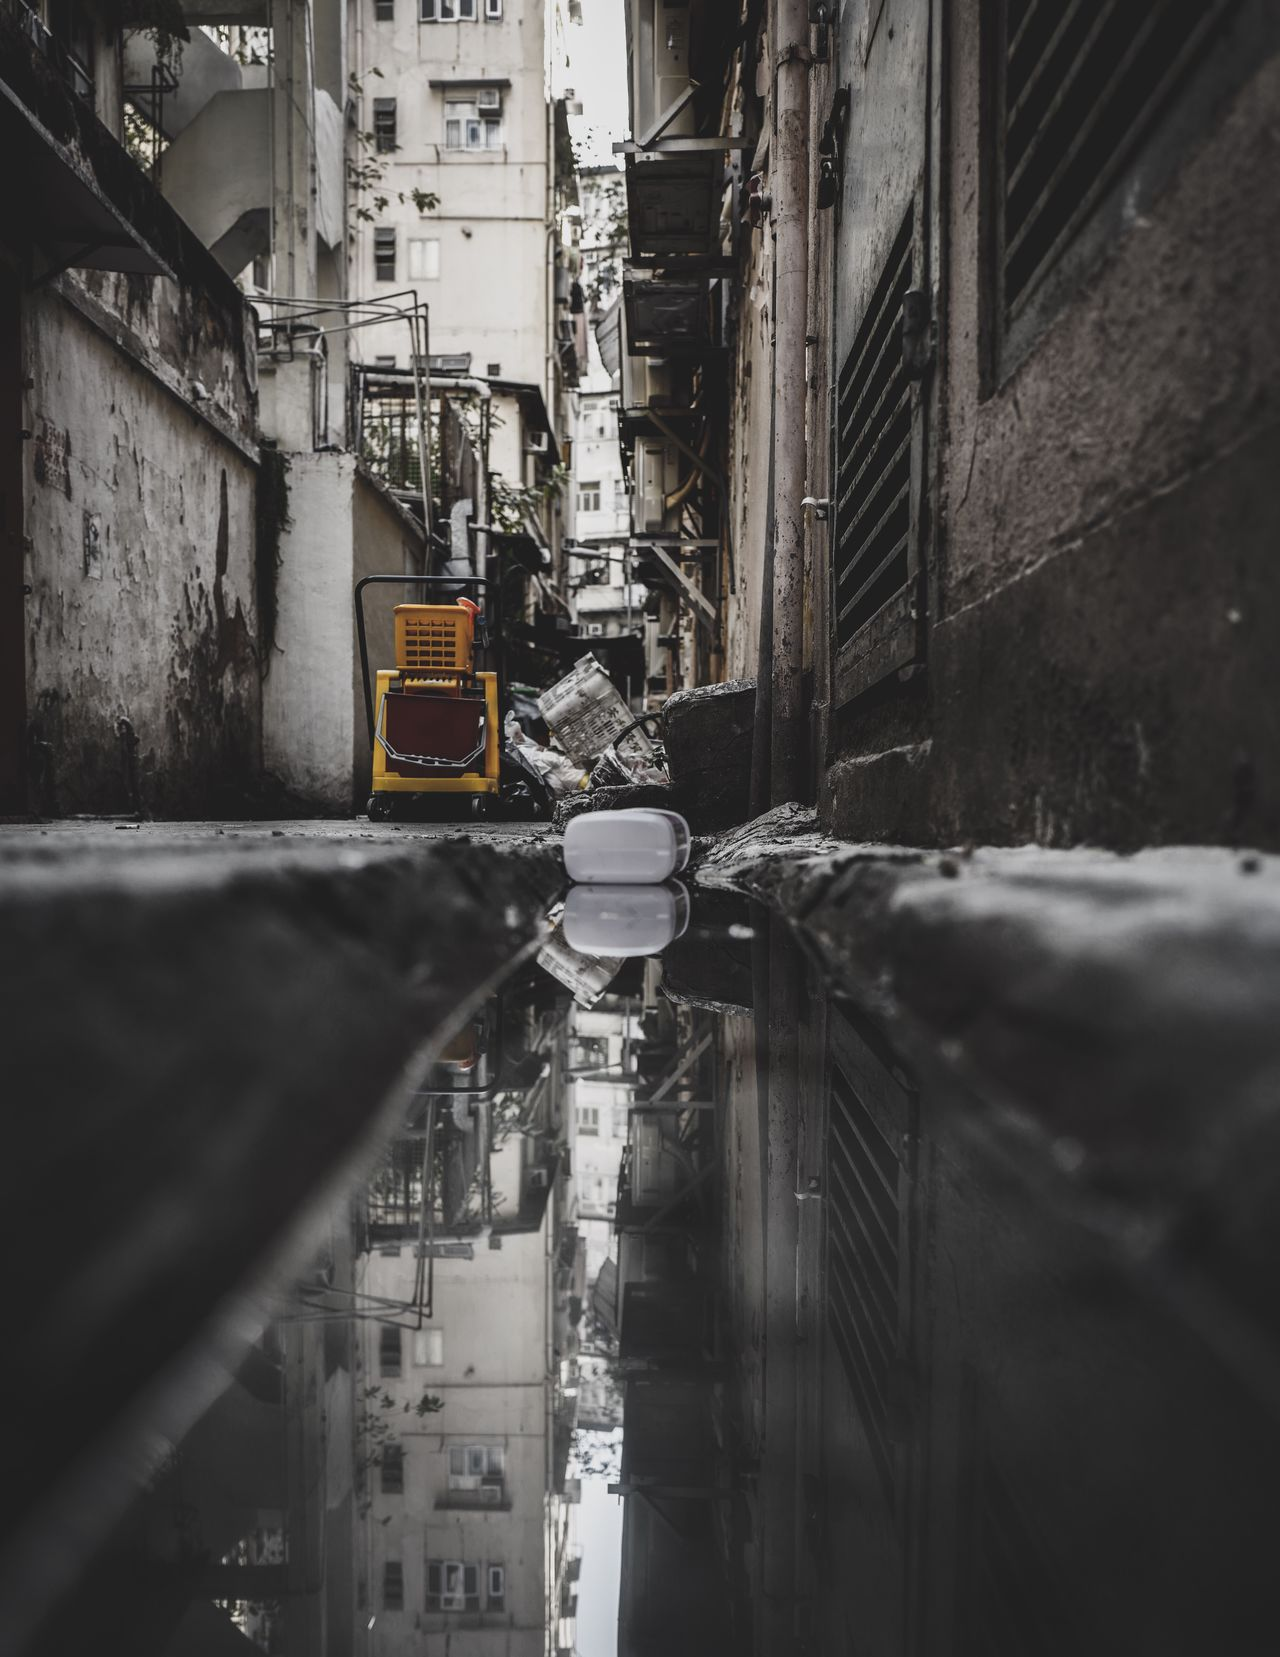 Alley Ditch Streetphotography Discoverhongkong Leicaq Refrection Mirror City Life Capture The Moment Weekend EyeEm Masterclass Lifestyles Moment Of Silence EyeEmNewHere Life In Motion Moments Of Life Taking Photos Walking Around From My Point Of View Found On The Roll Captured Moment Hello World Cityscapes EyeEm Gallery Beautiful Reflection EyeEm Best Edits